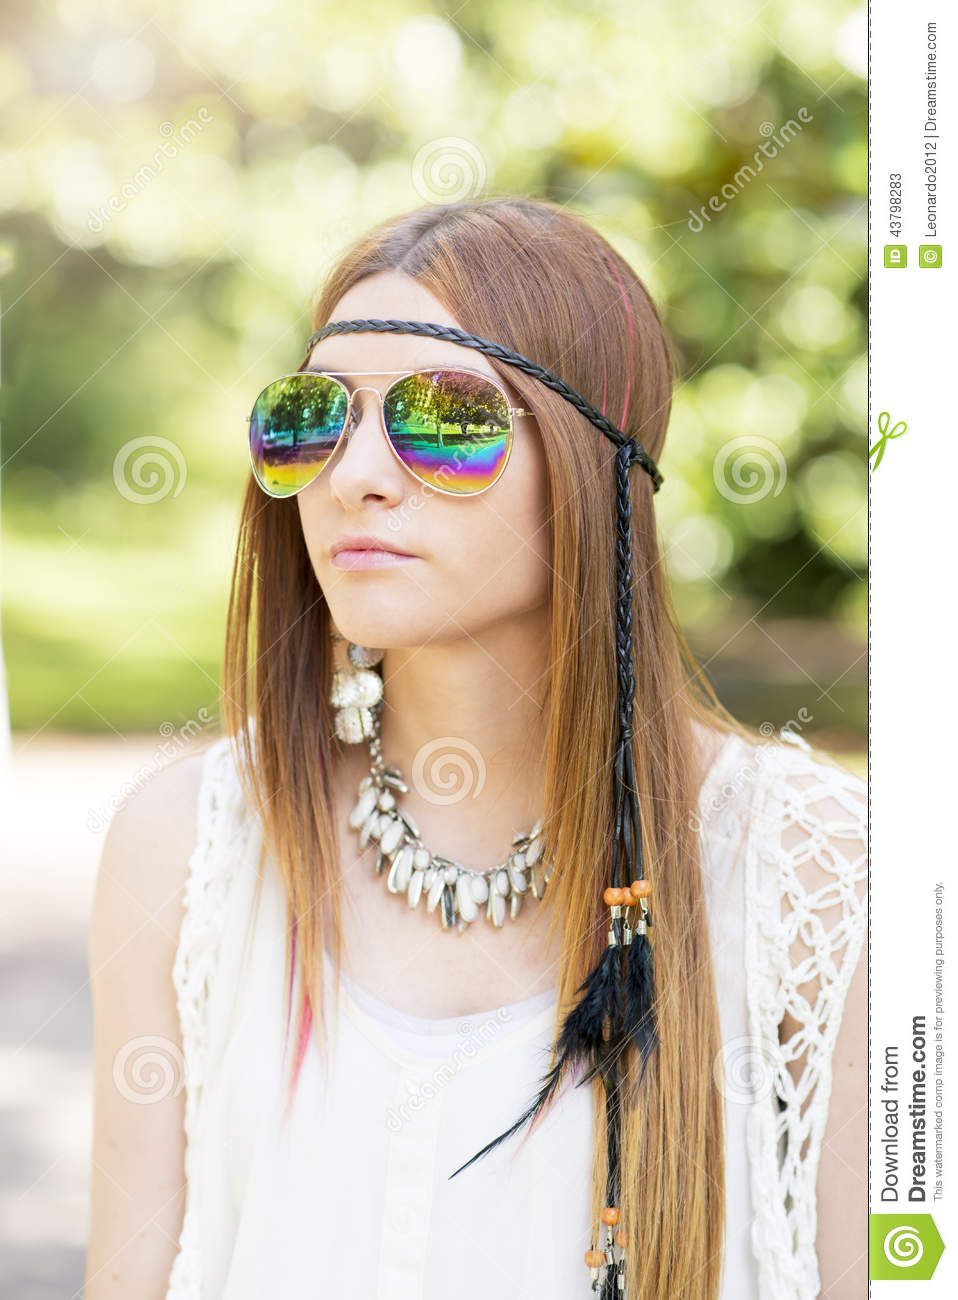 portrait de belle jeune femme avec le style hippie de lunettes de soleil photo stock image. Black Bedroom Furniture Sets. Home Design Ideas